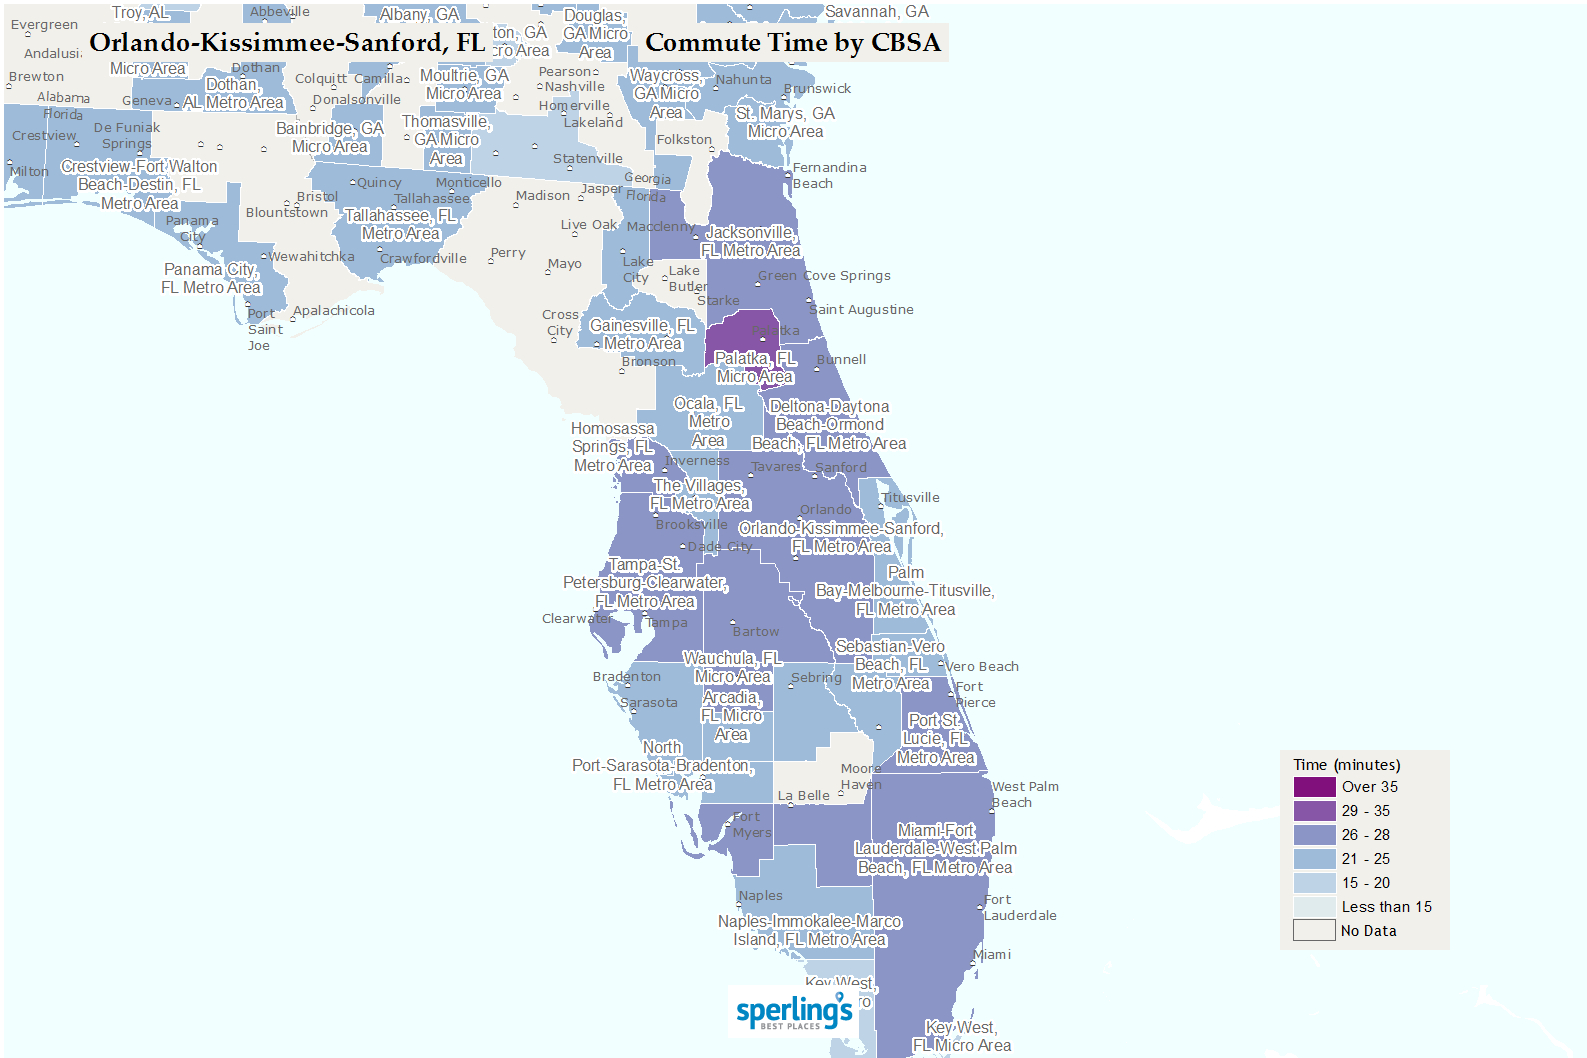 Best Places To Live | Compare Cost Of Living, Crime, Cities, Schools - Lake Mary Florida Map